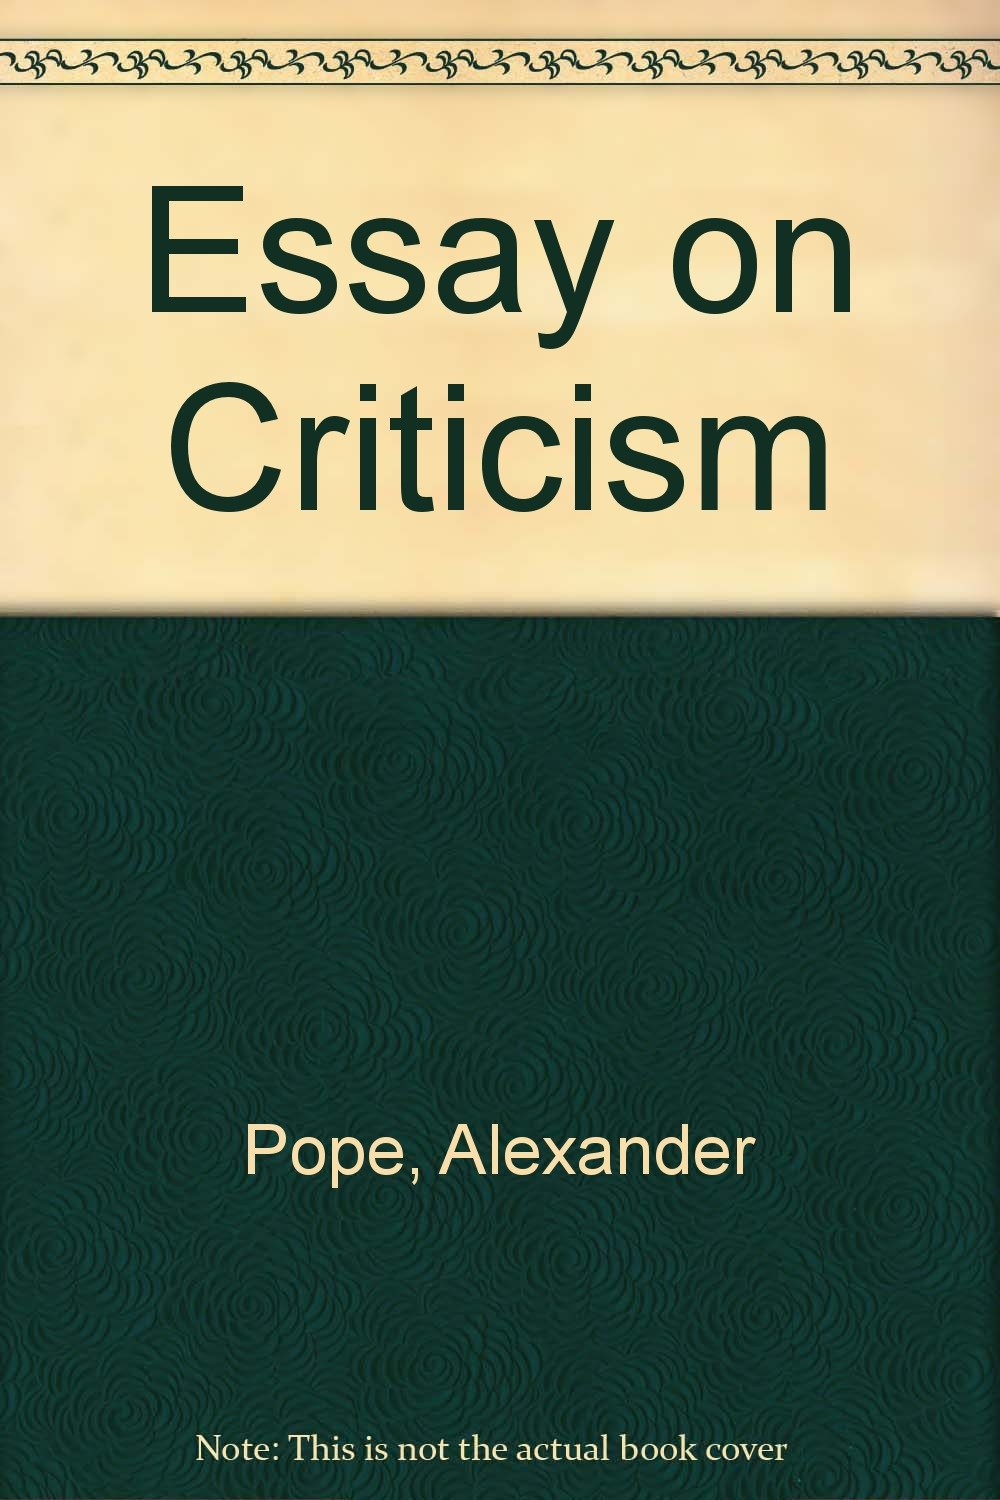 alexander essay on criticism